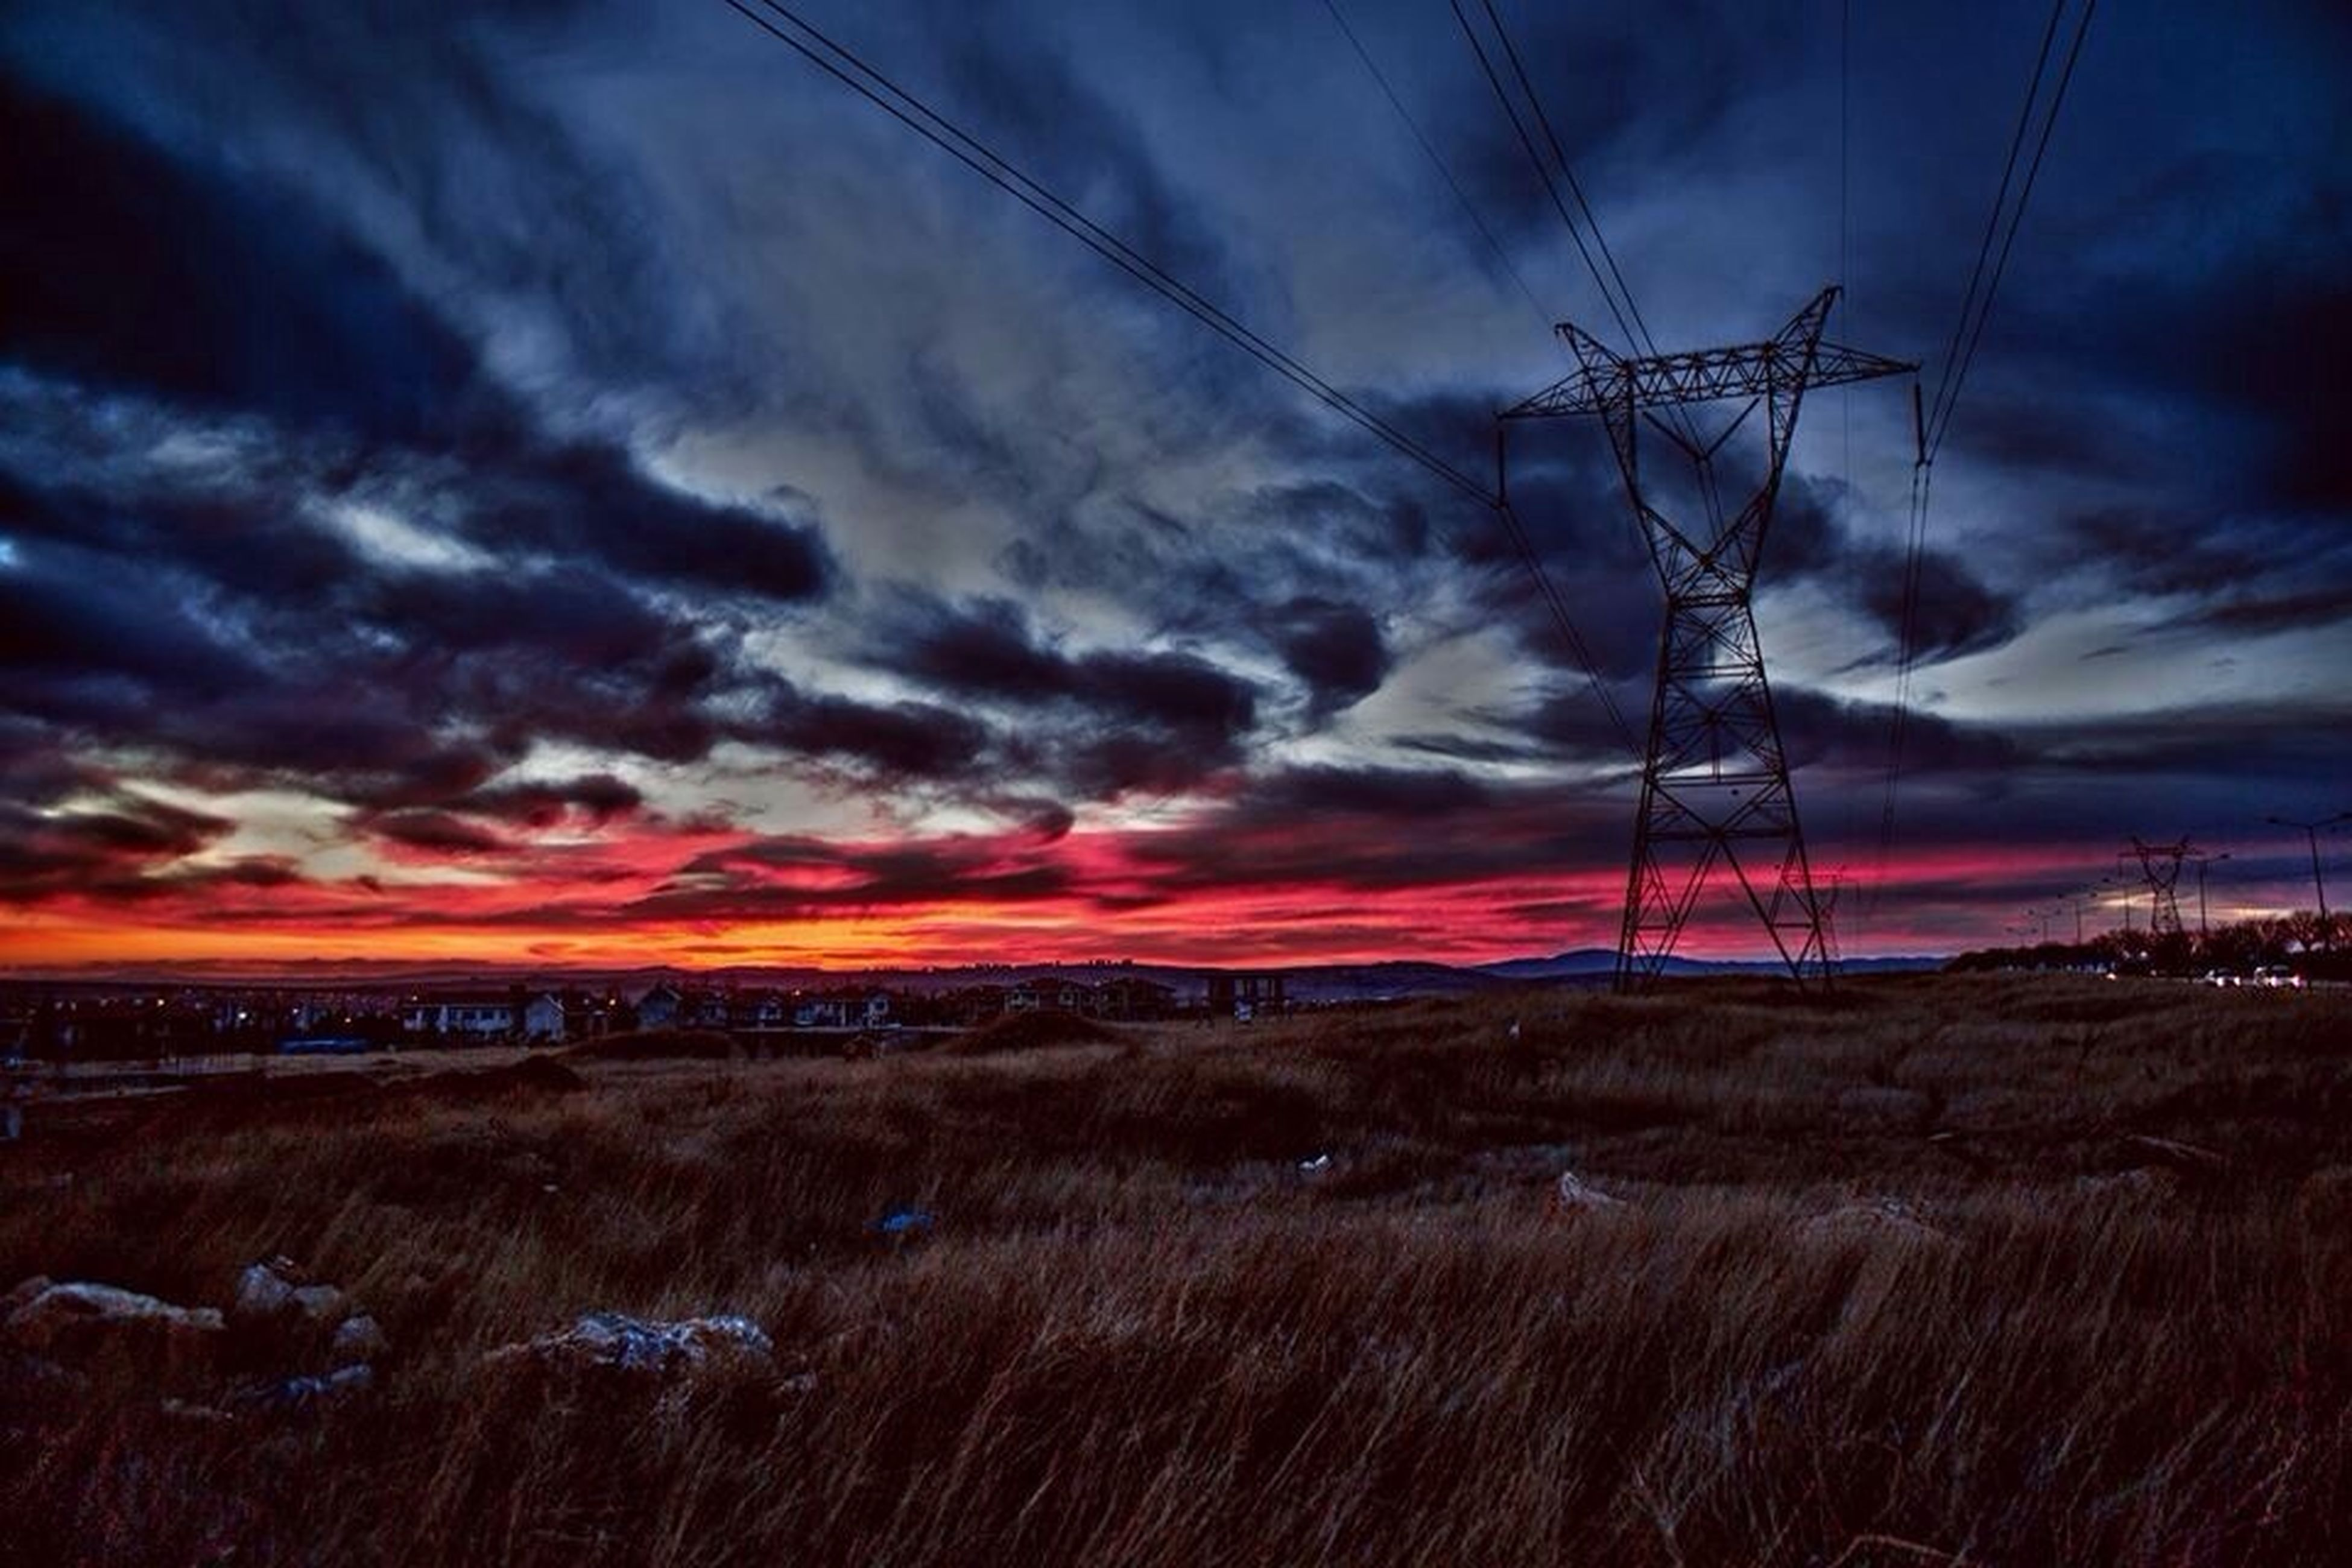 sky, cloud - sky, landscape, power line, sunset, tranquil scene, tranquility, scenics, field, electricity pylon, cloudy, beauty in nature, cloud, nature, electricity, dramatic sky, rural scene, power supply, fuel and power generation, idyllic